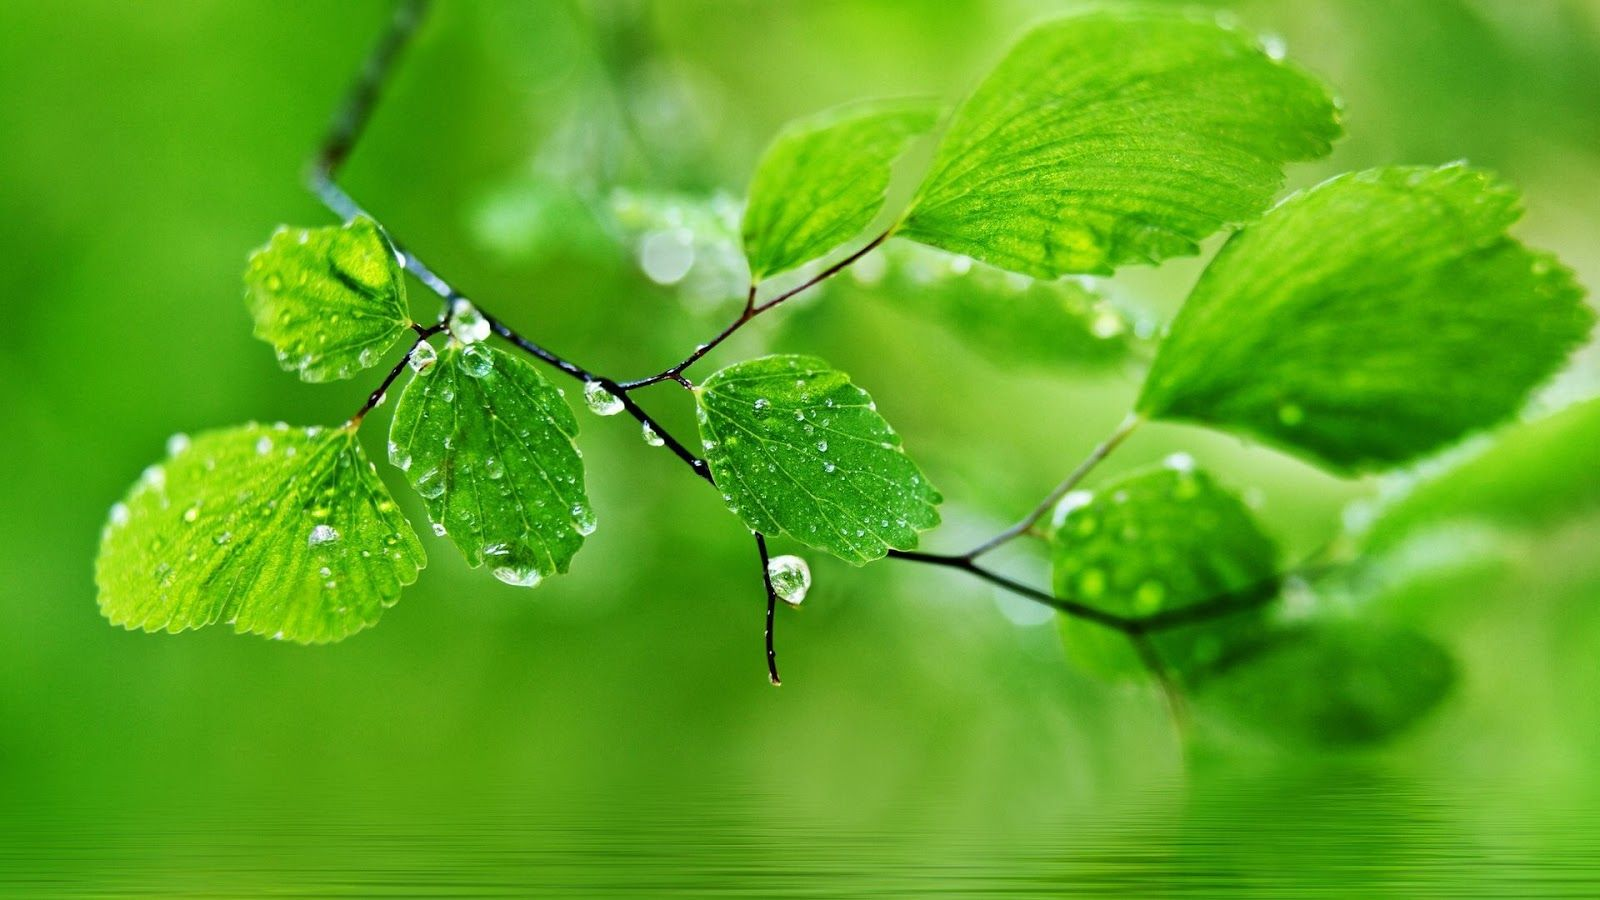 Water Drops Hd Wallpapers Very Beautiful And Much Interestingnow